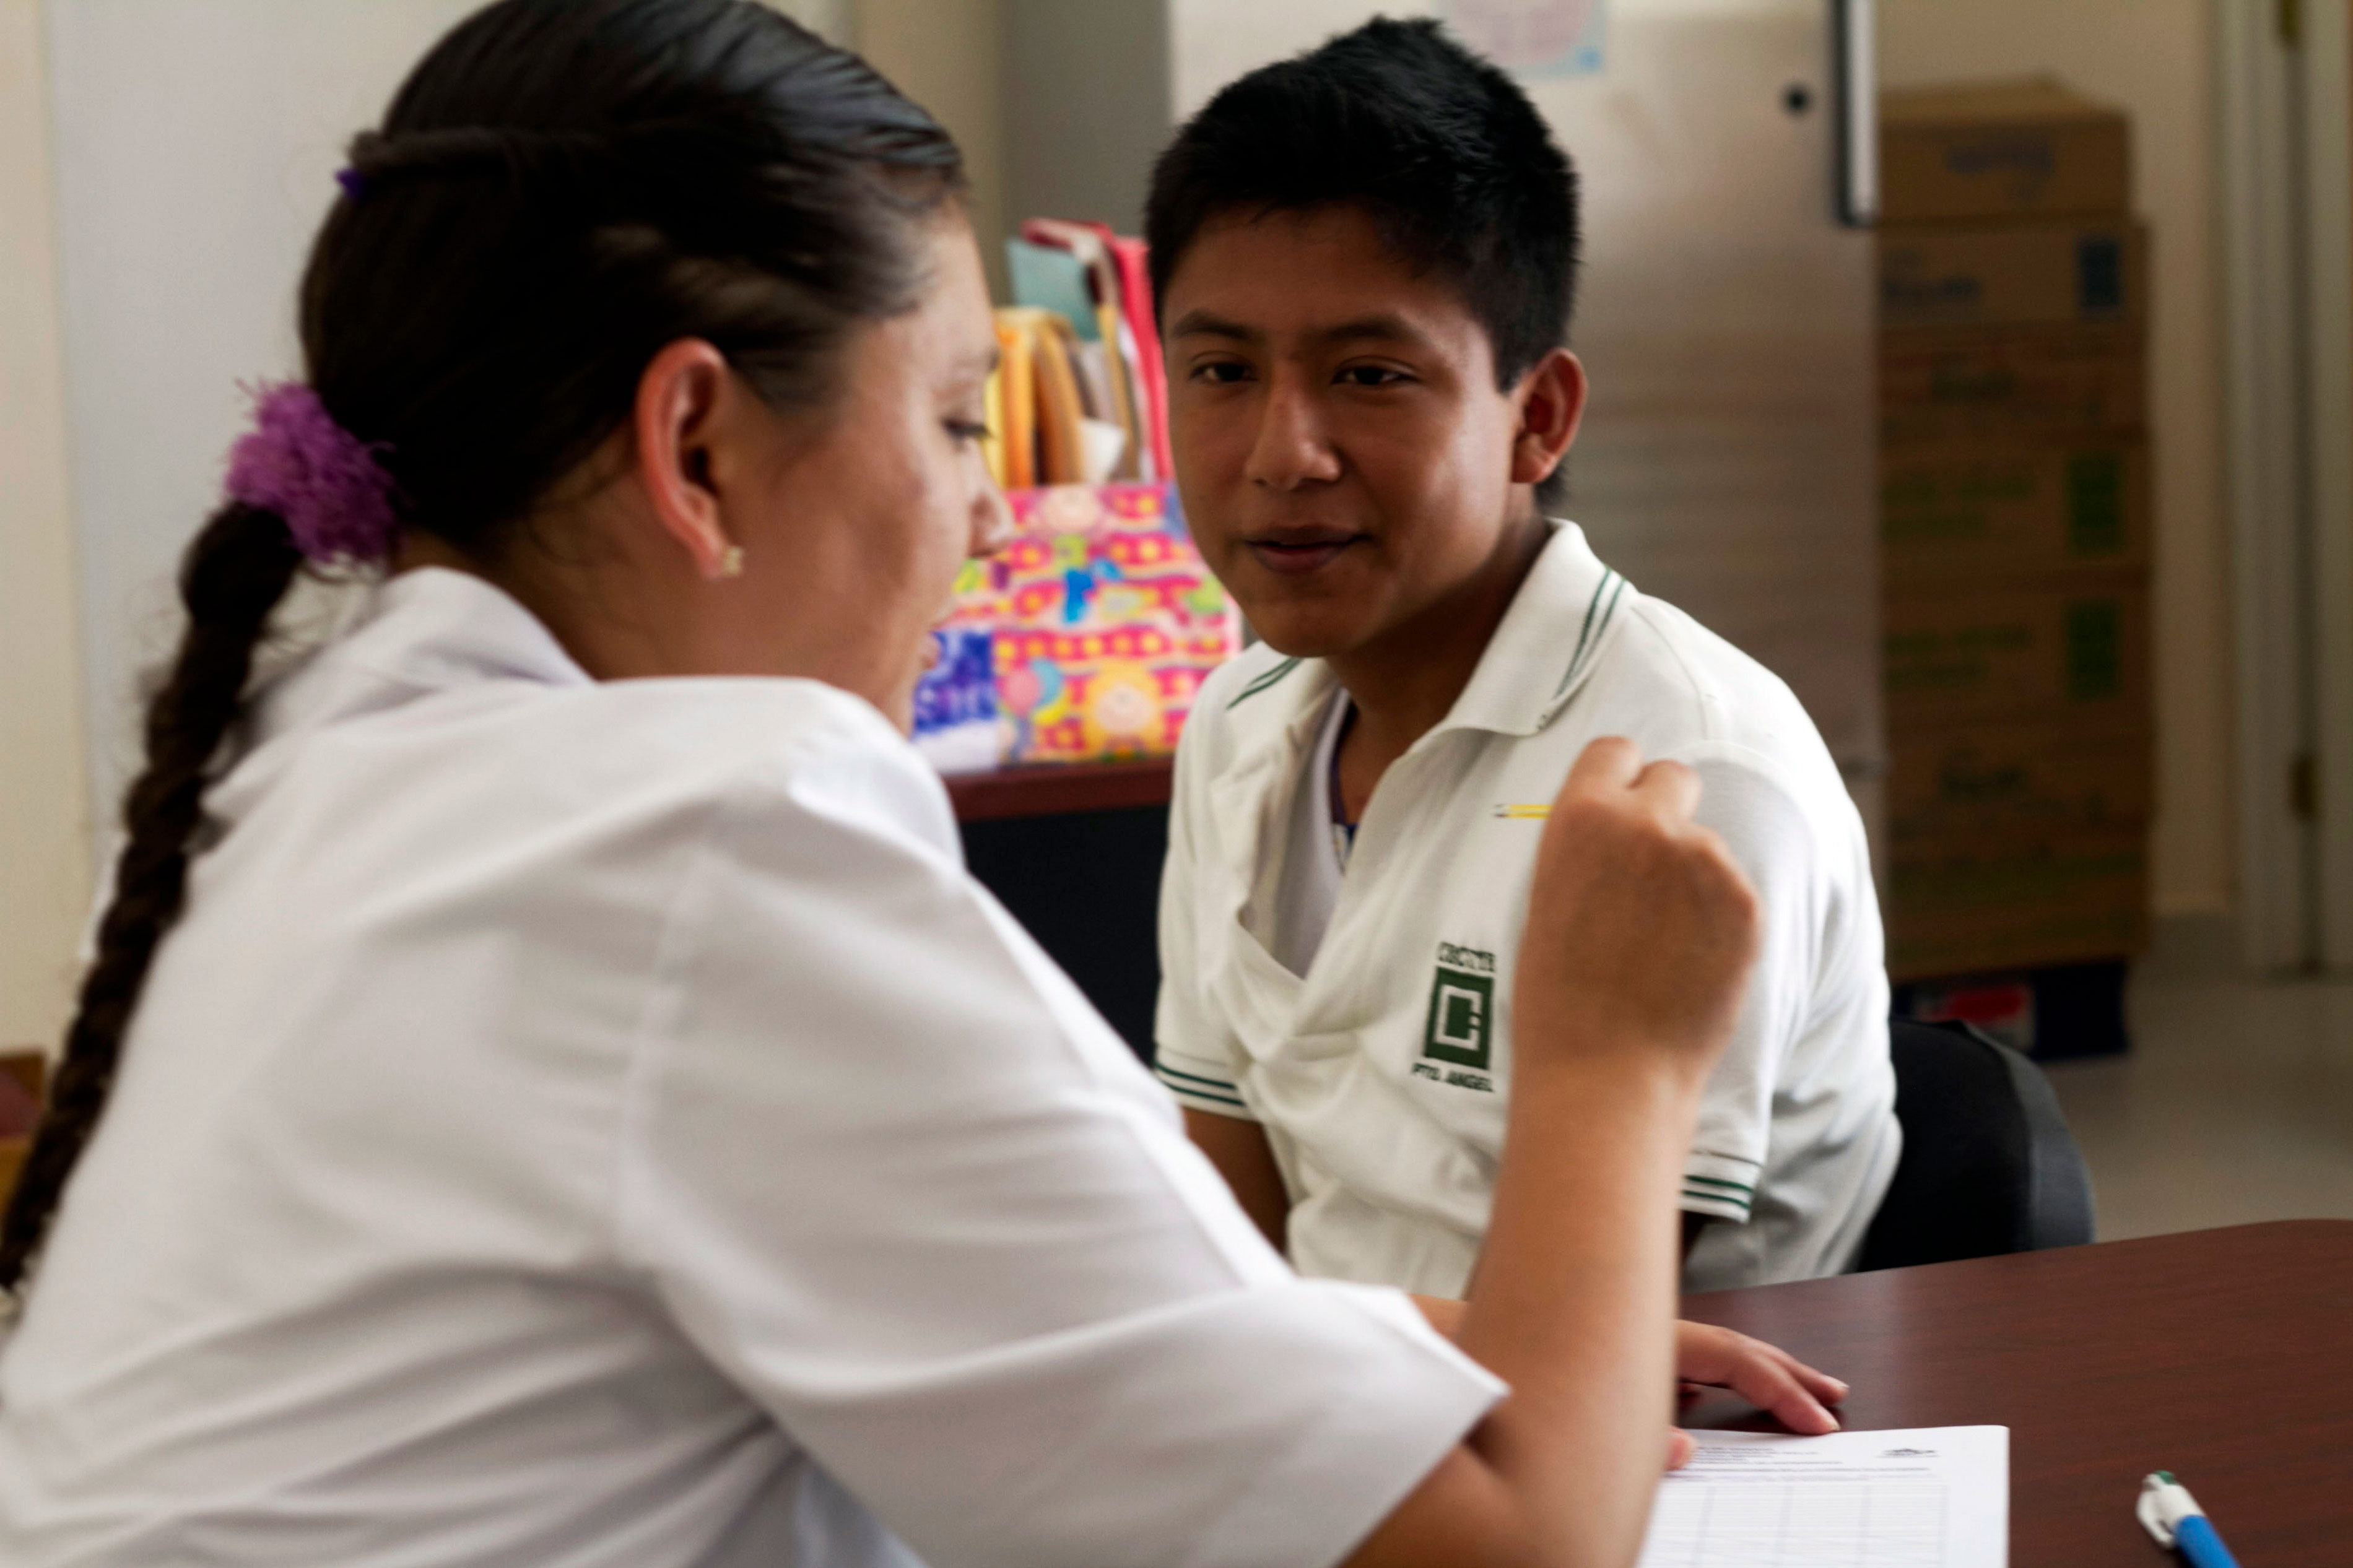 Ubaldo Mendoza, 18, has initiated Chagas treatment in San Pedro Pochutlas health facility.